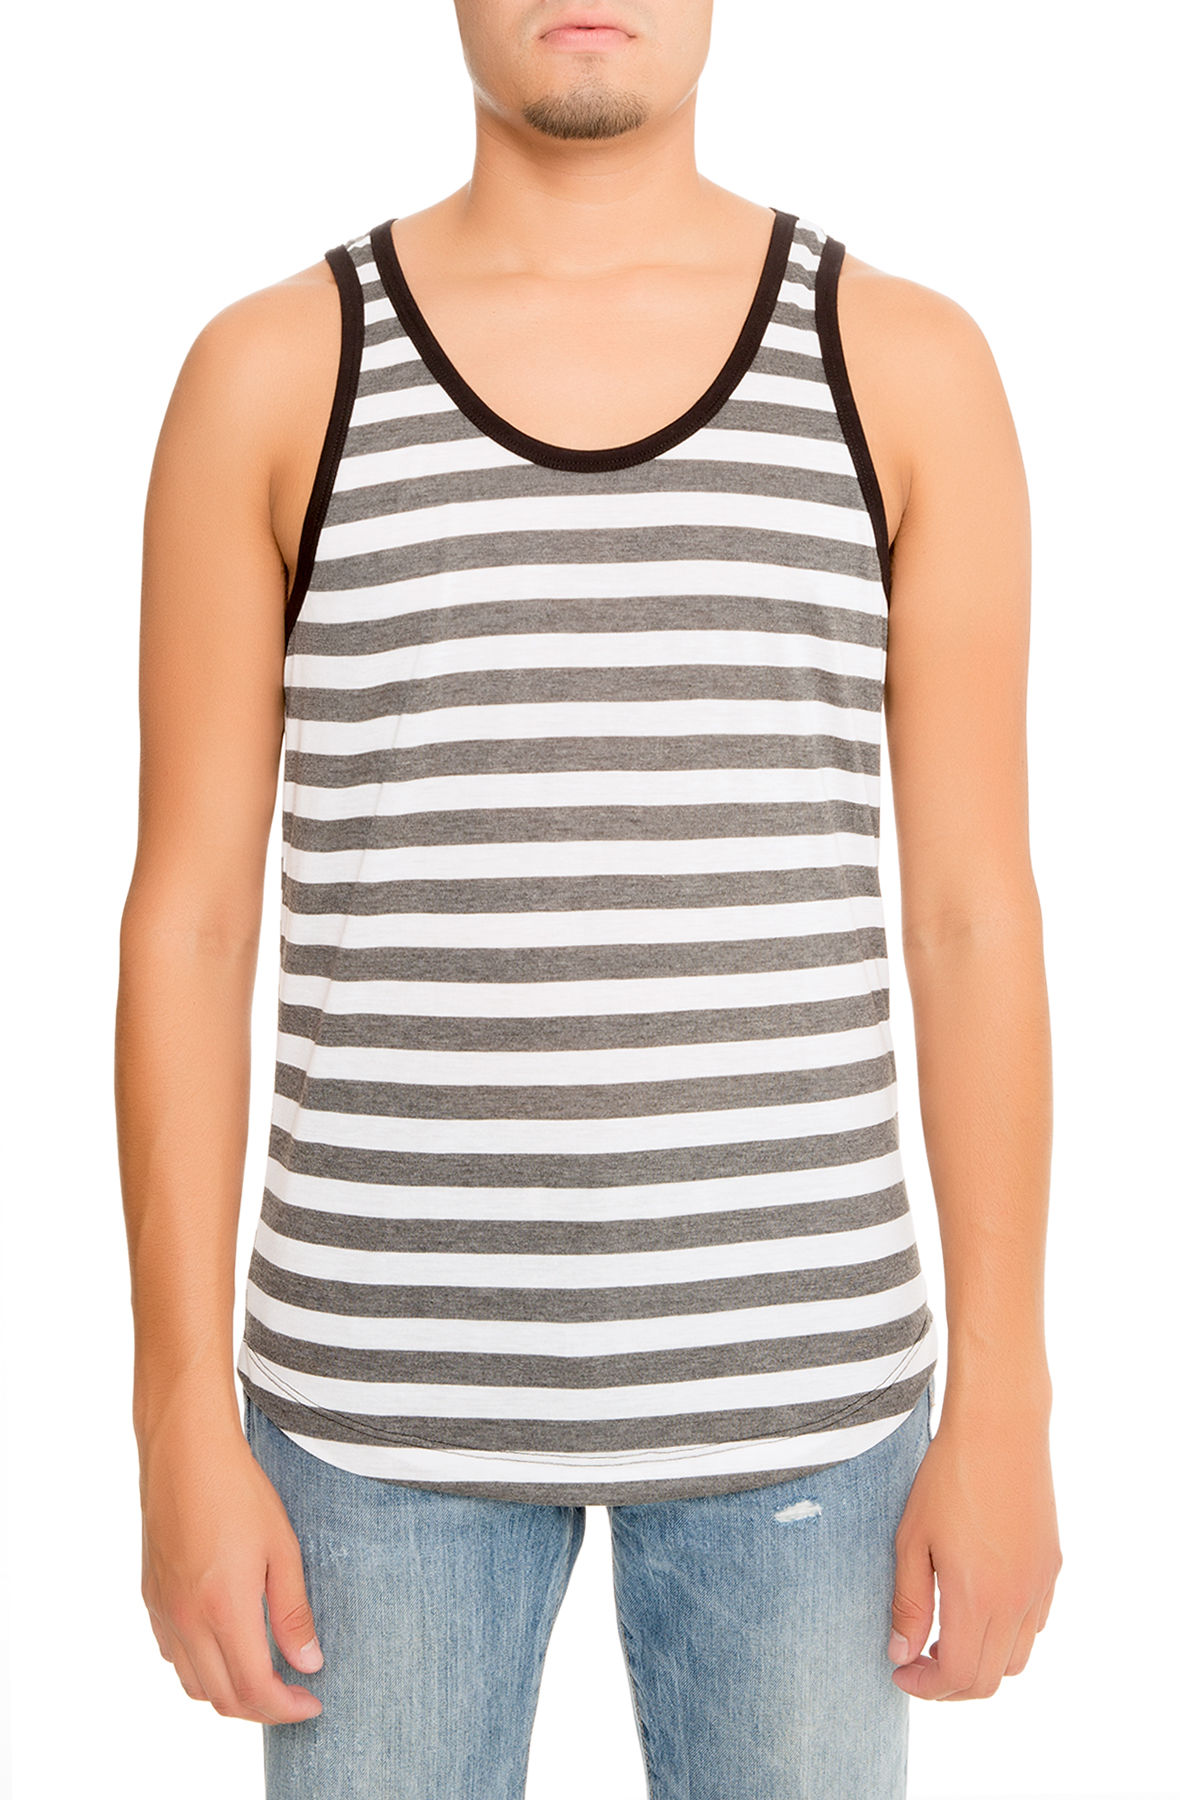 The Miller Striped Tank in Charcoal Grey